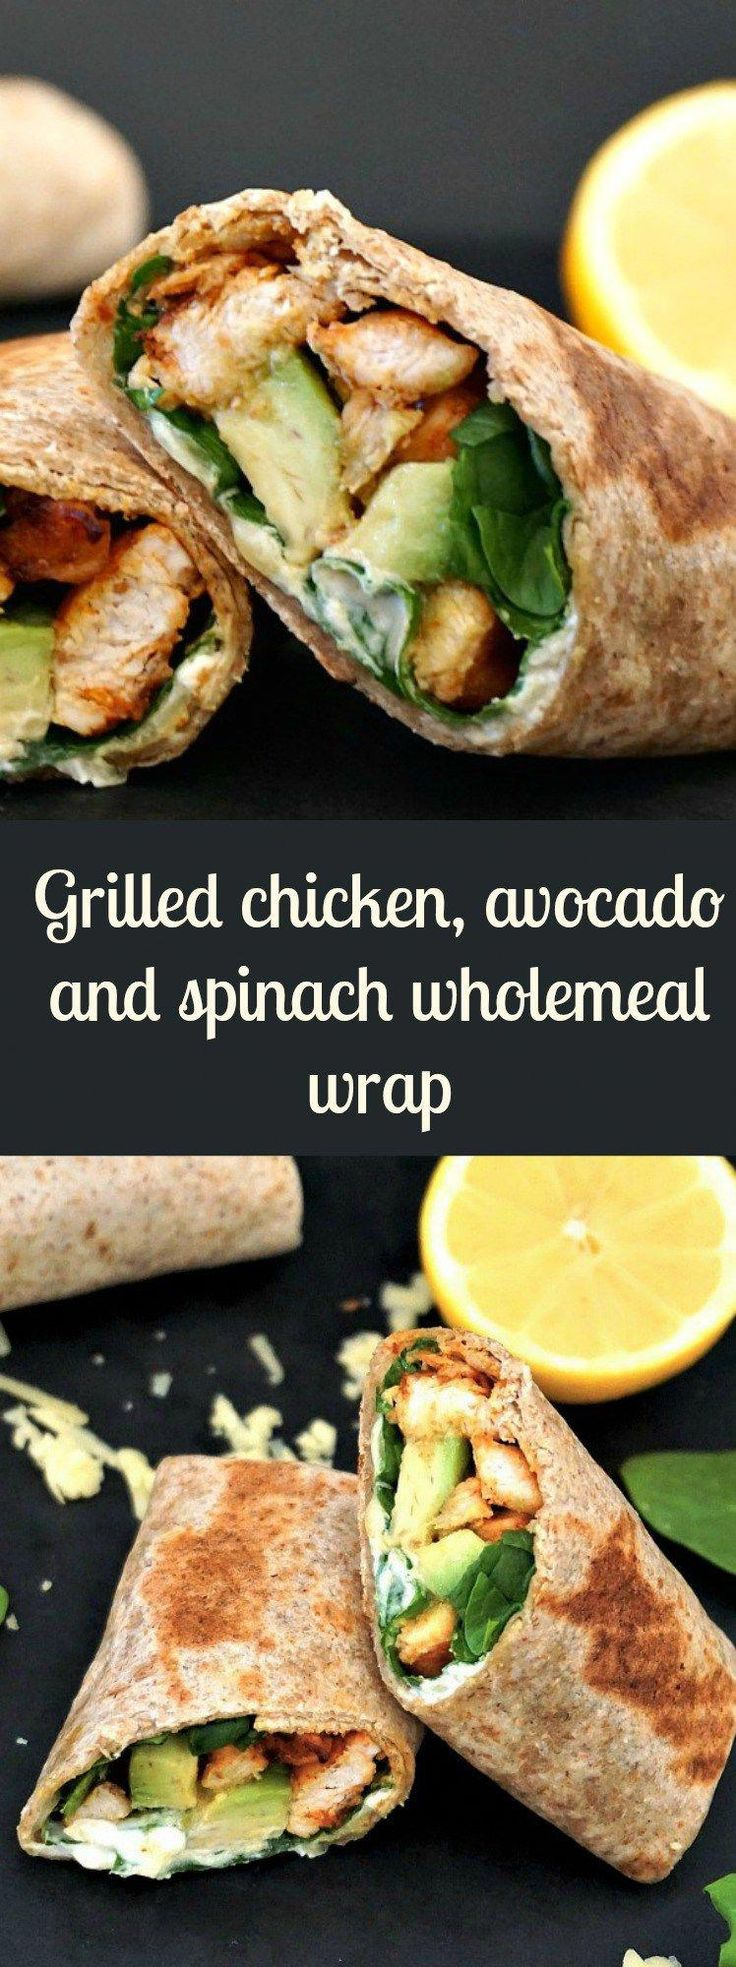 Grilled chicken, avocado and spinach wholemeal wrap #HealthyRecipesclean